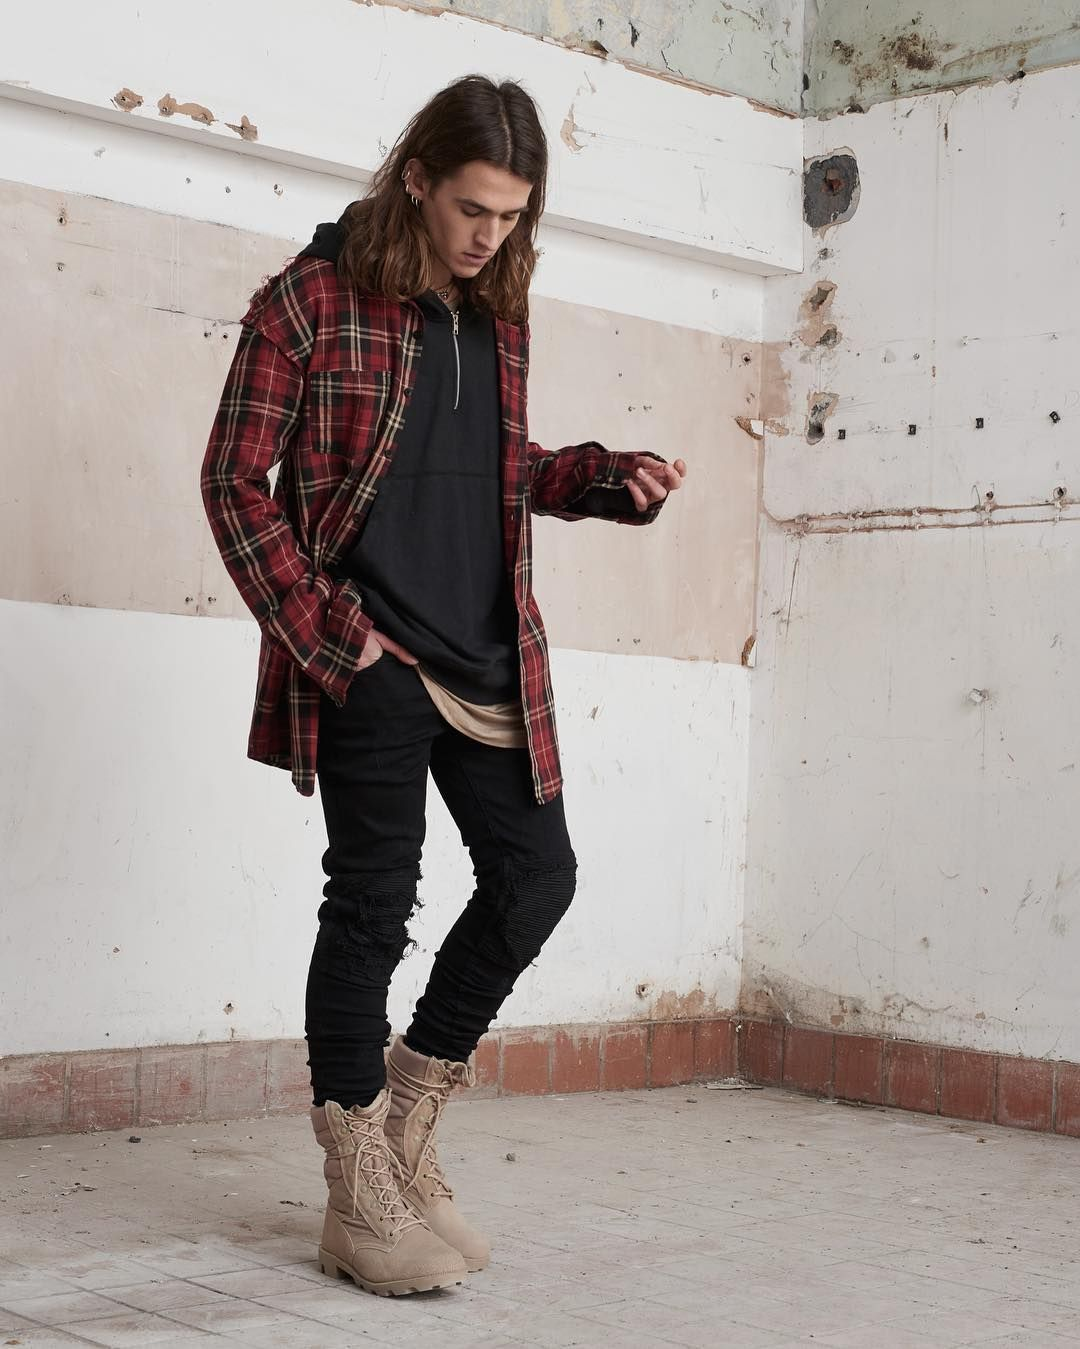 Flannel men's style  The Raw Seam Tartan Shirt The Zip Hoodie Base Layer Vest and